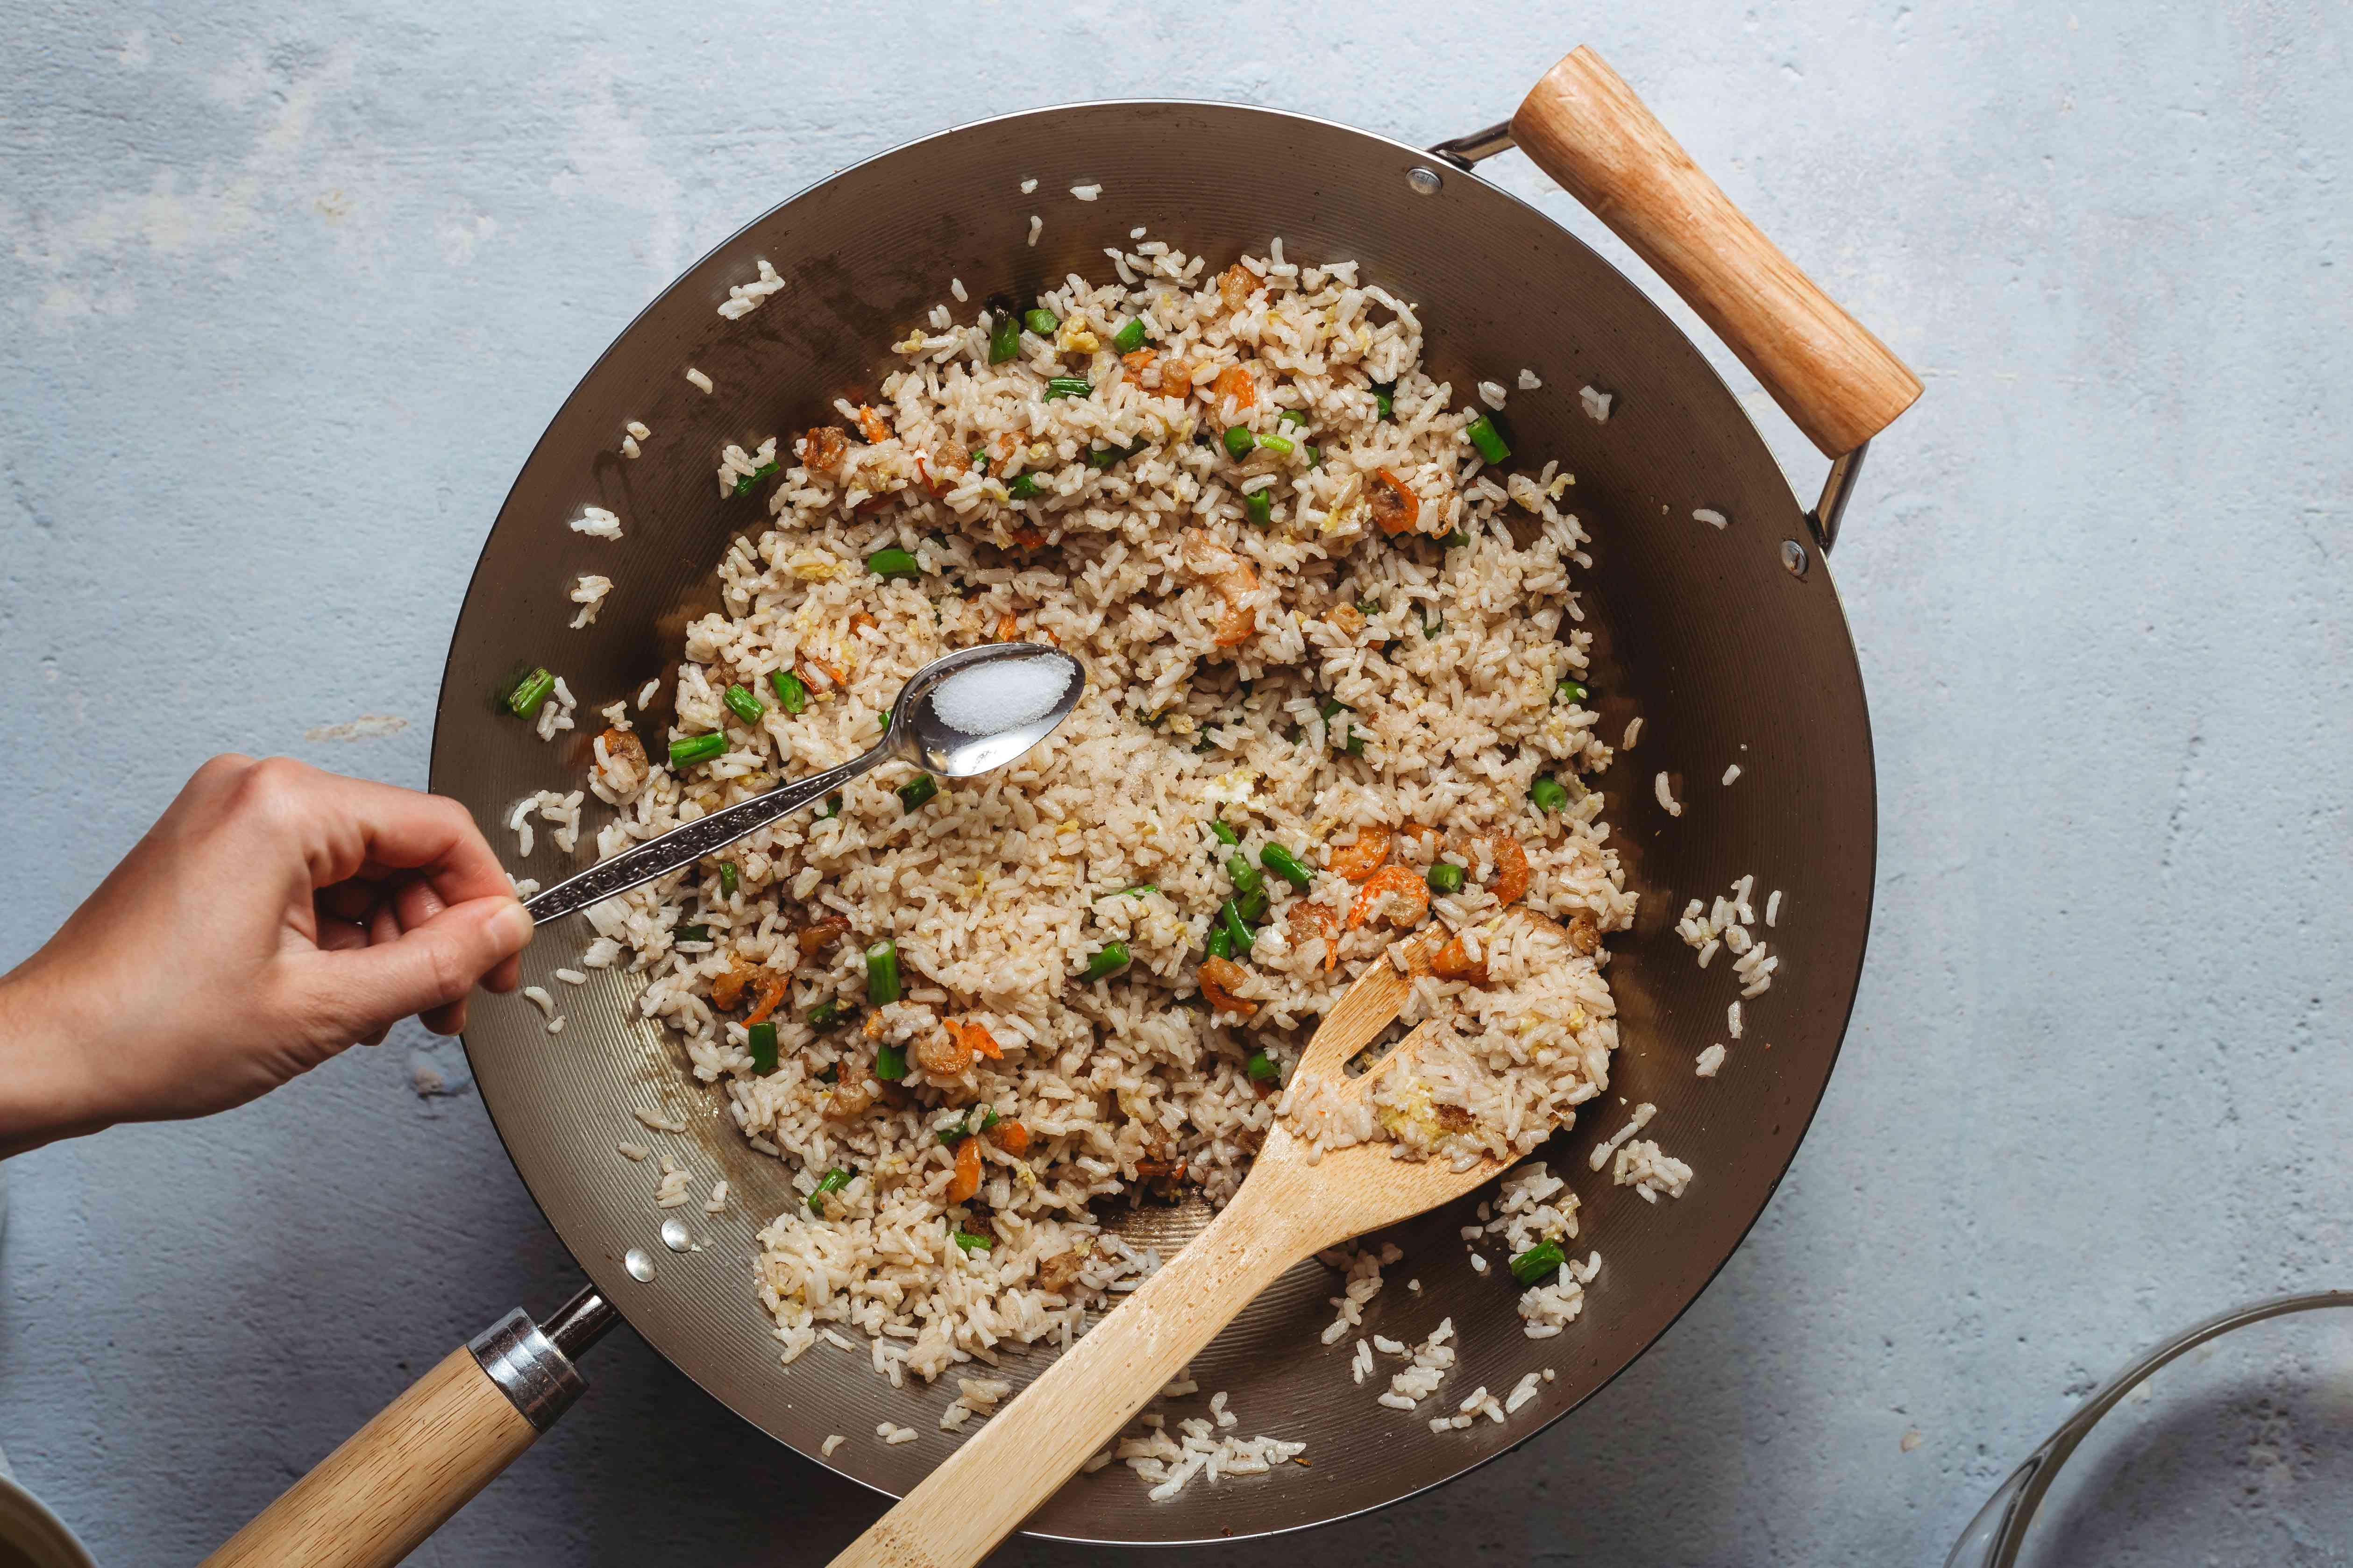 Malaysian Fried Rice With Shrimp or Belacan Recipe in a wok